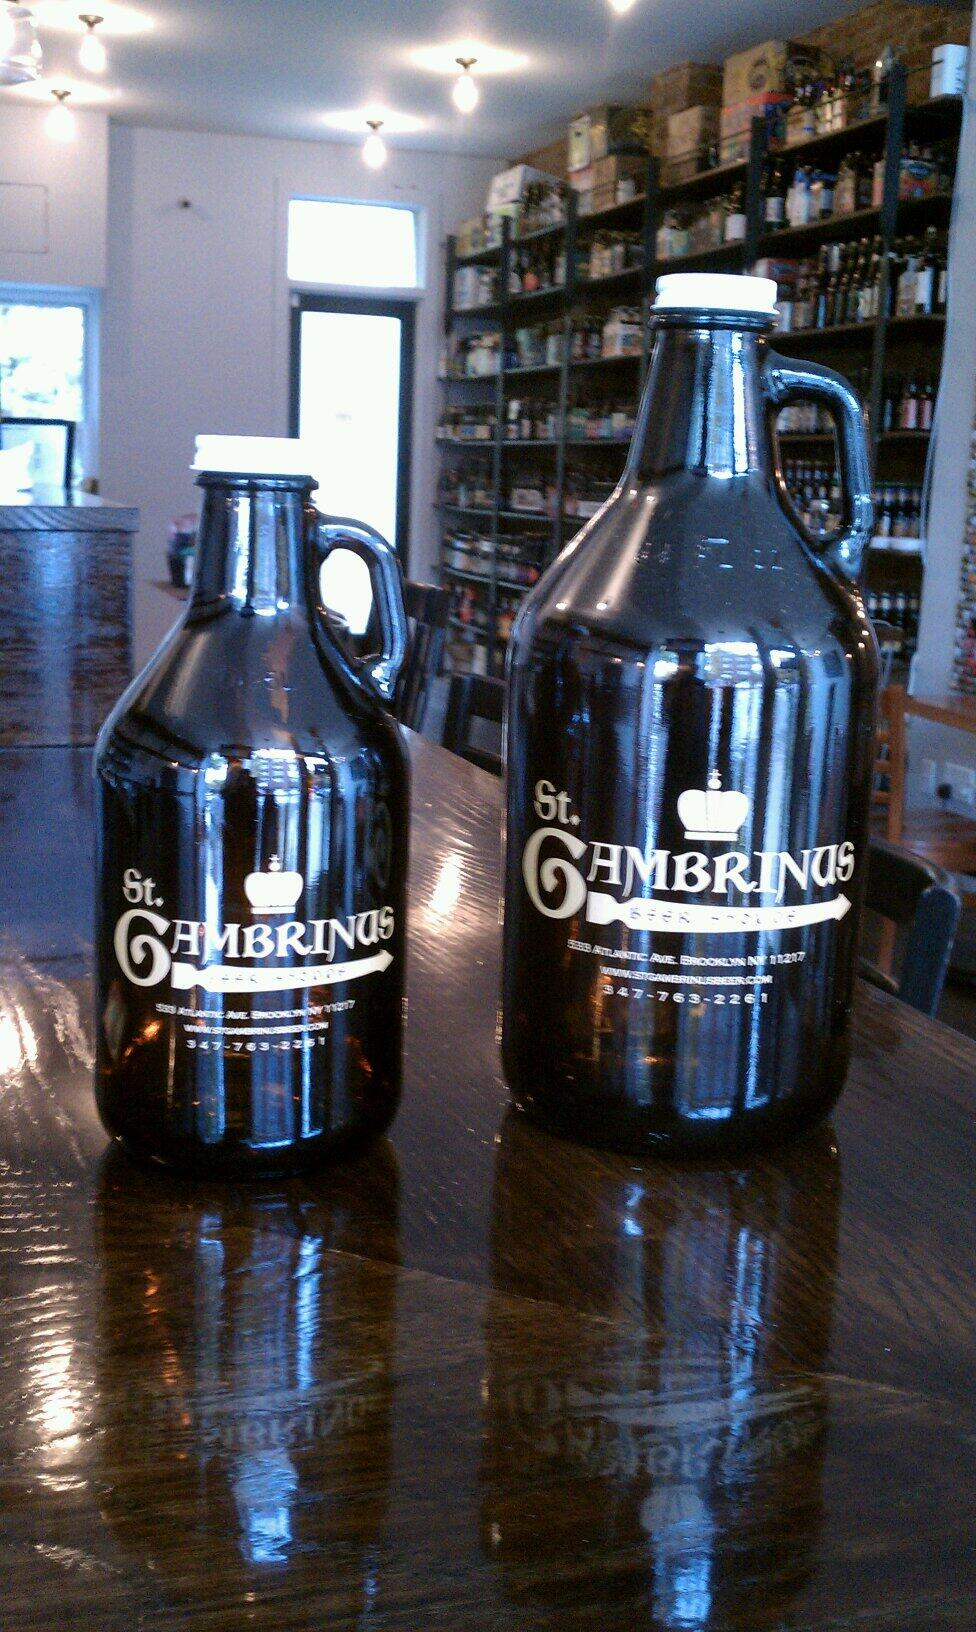 St Gambrinus Beer Shoppe Growlers